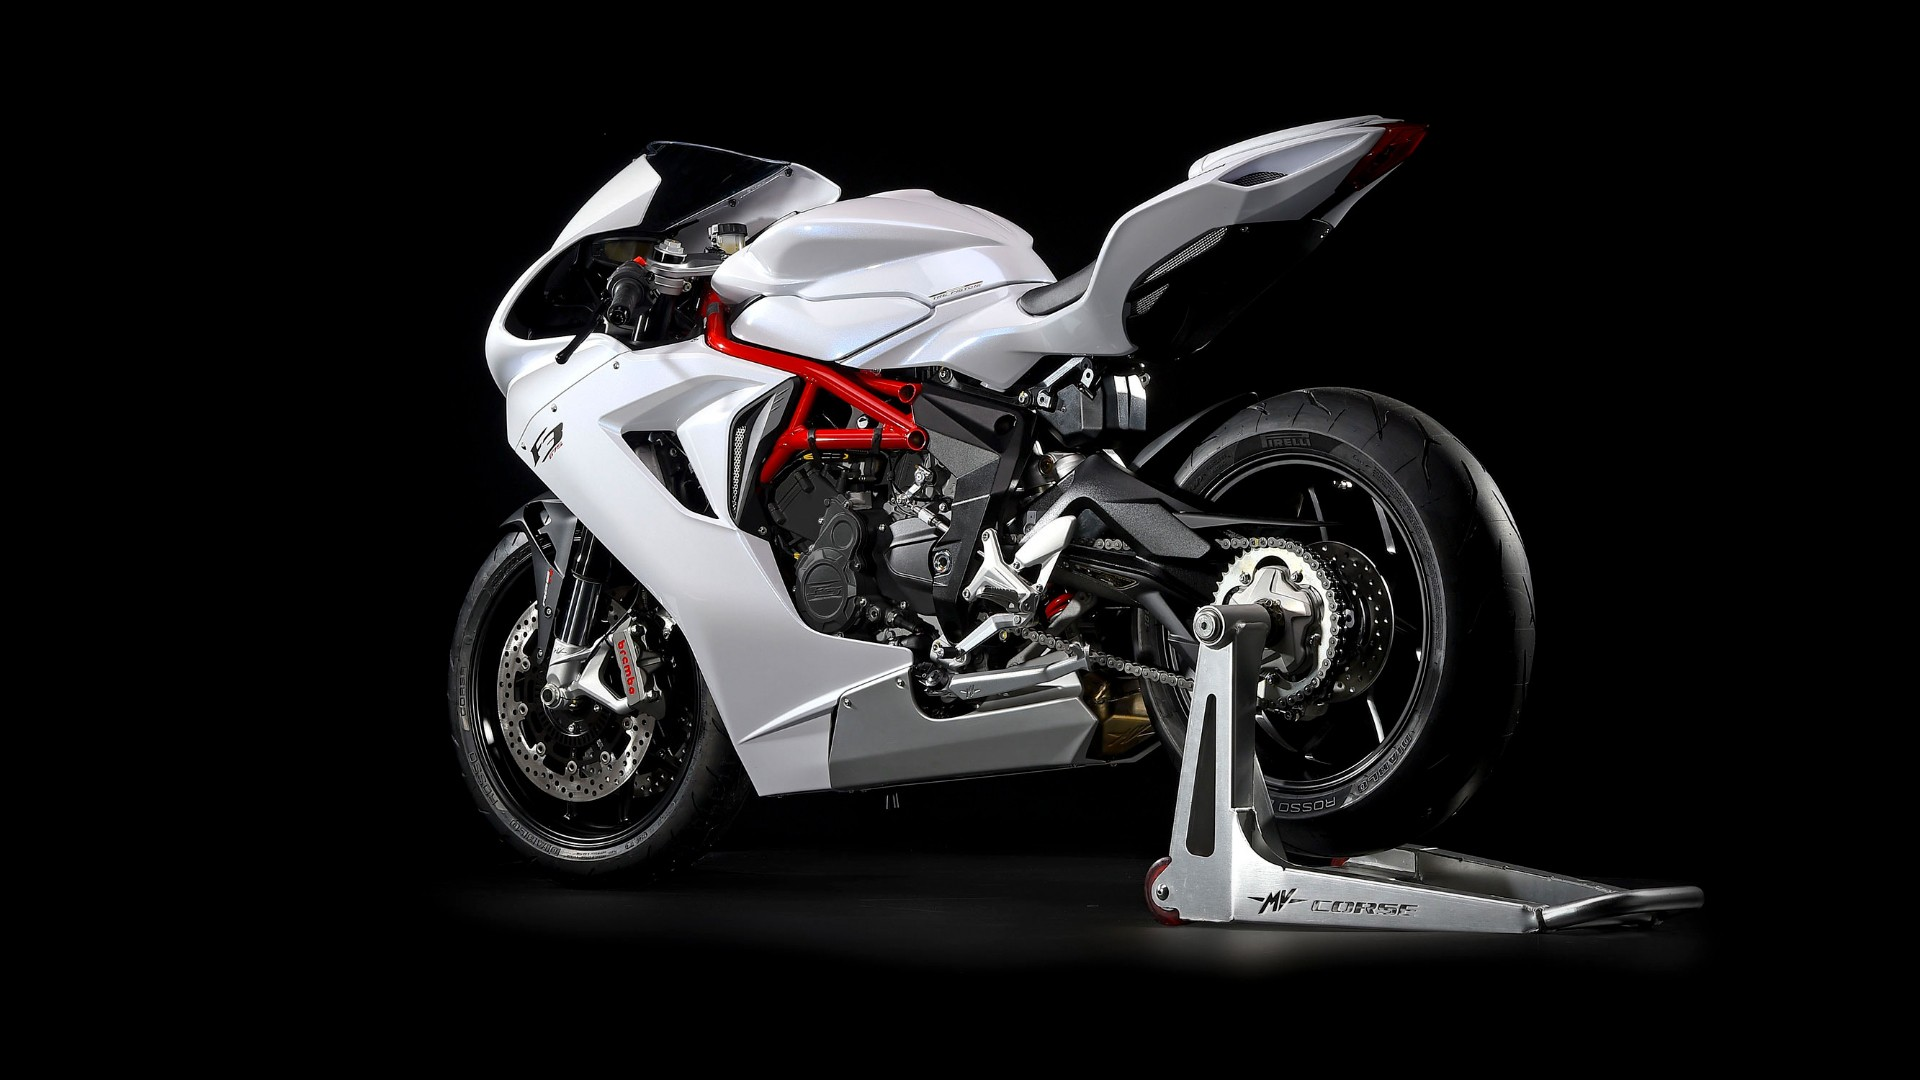 mv agusta f3 675 specs 2016 2017 2018 autoevolution. Black Bedroom Furniture Sets. Home Design Ideas